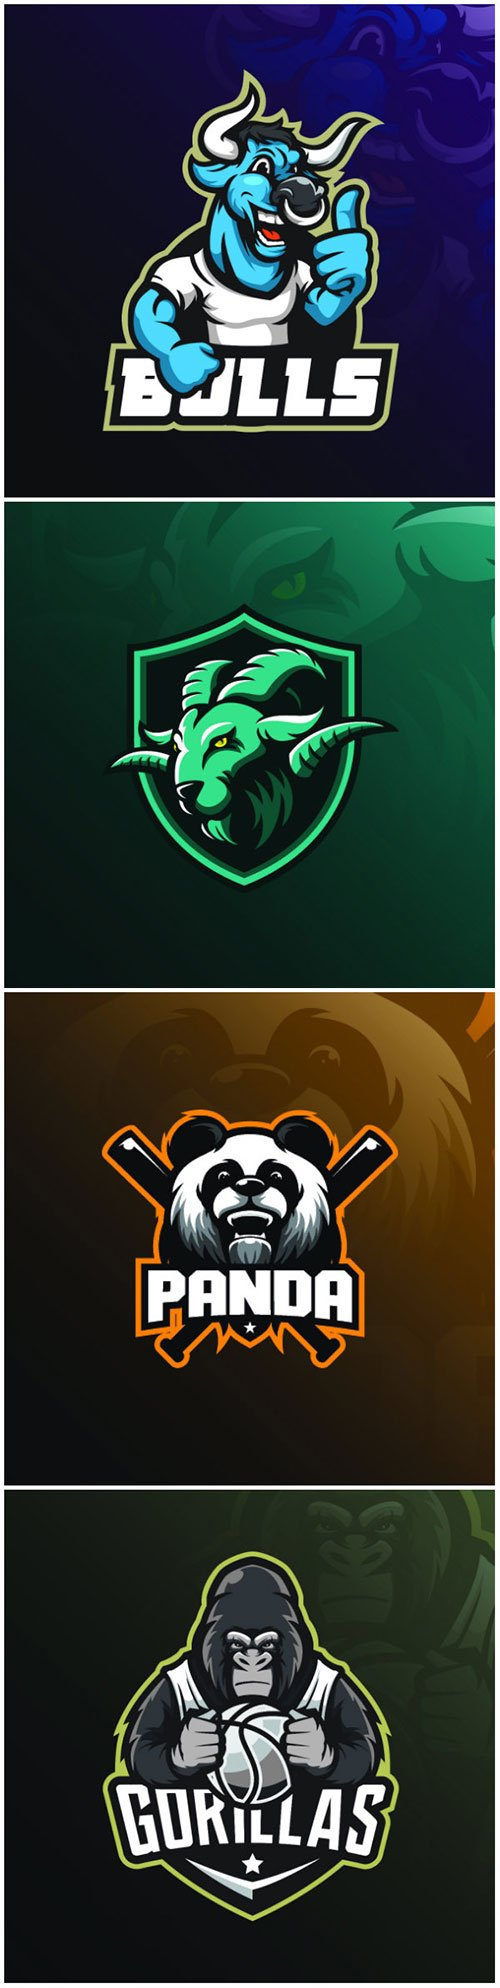 Mascot vector logo design with modern illustration concept style for badge, emblem and tshirt printing # 5